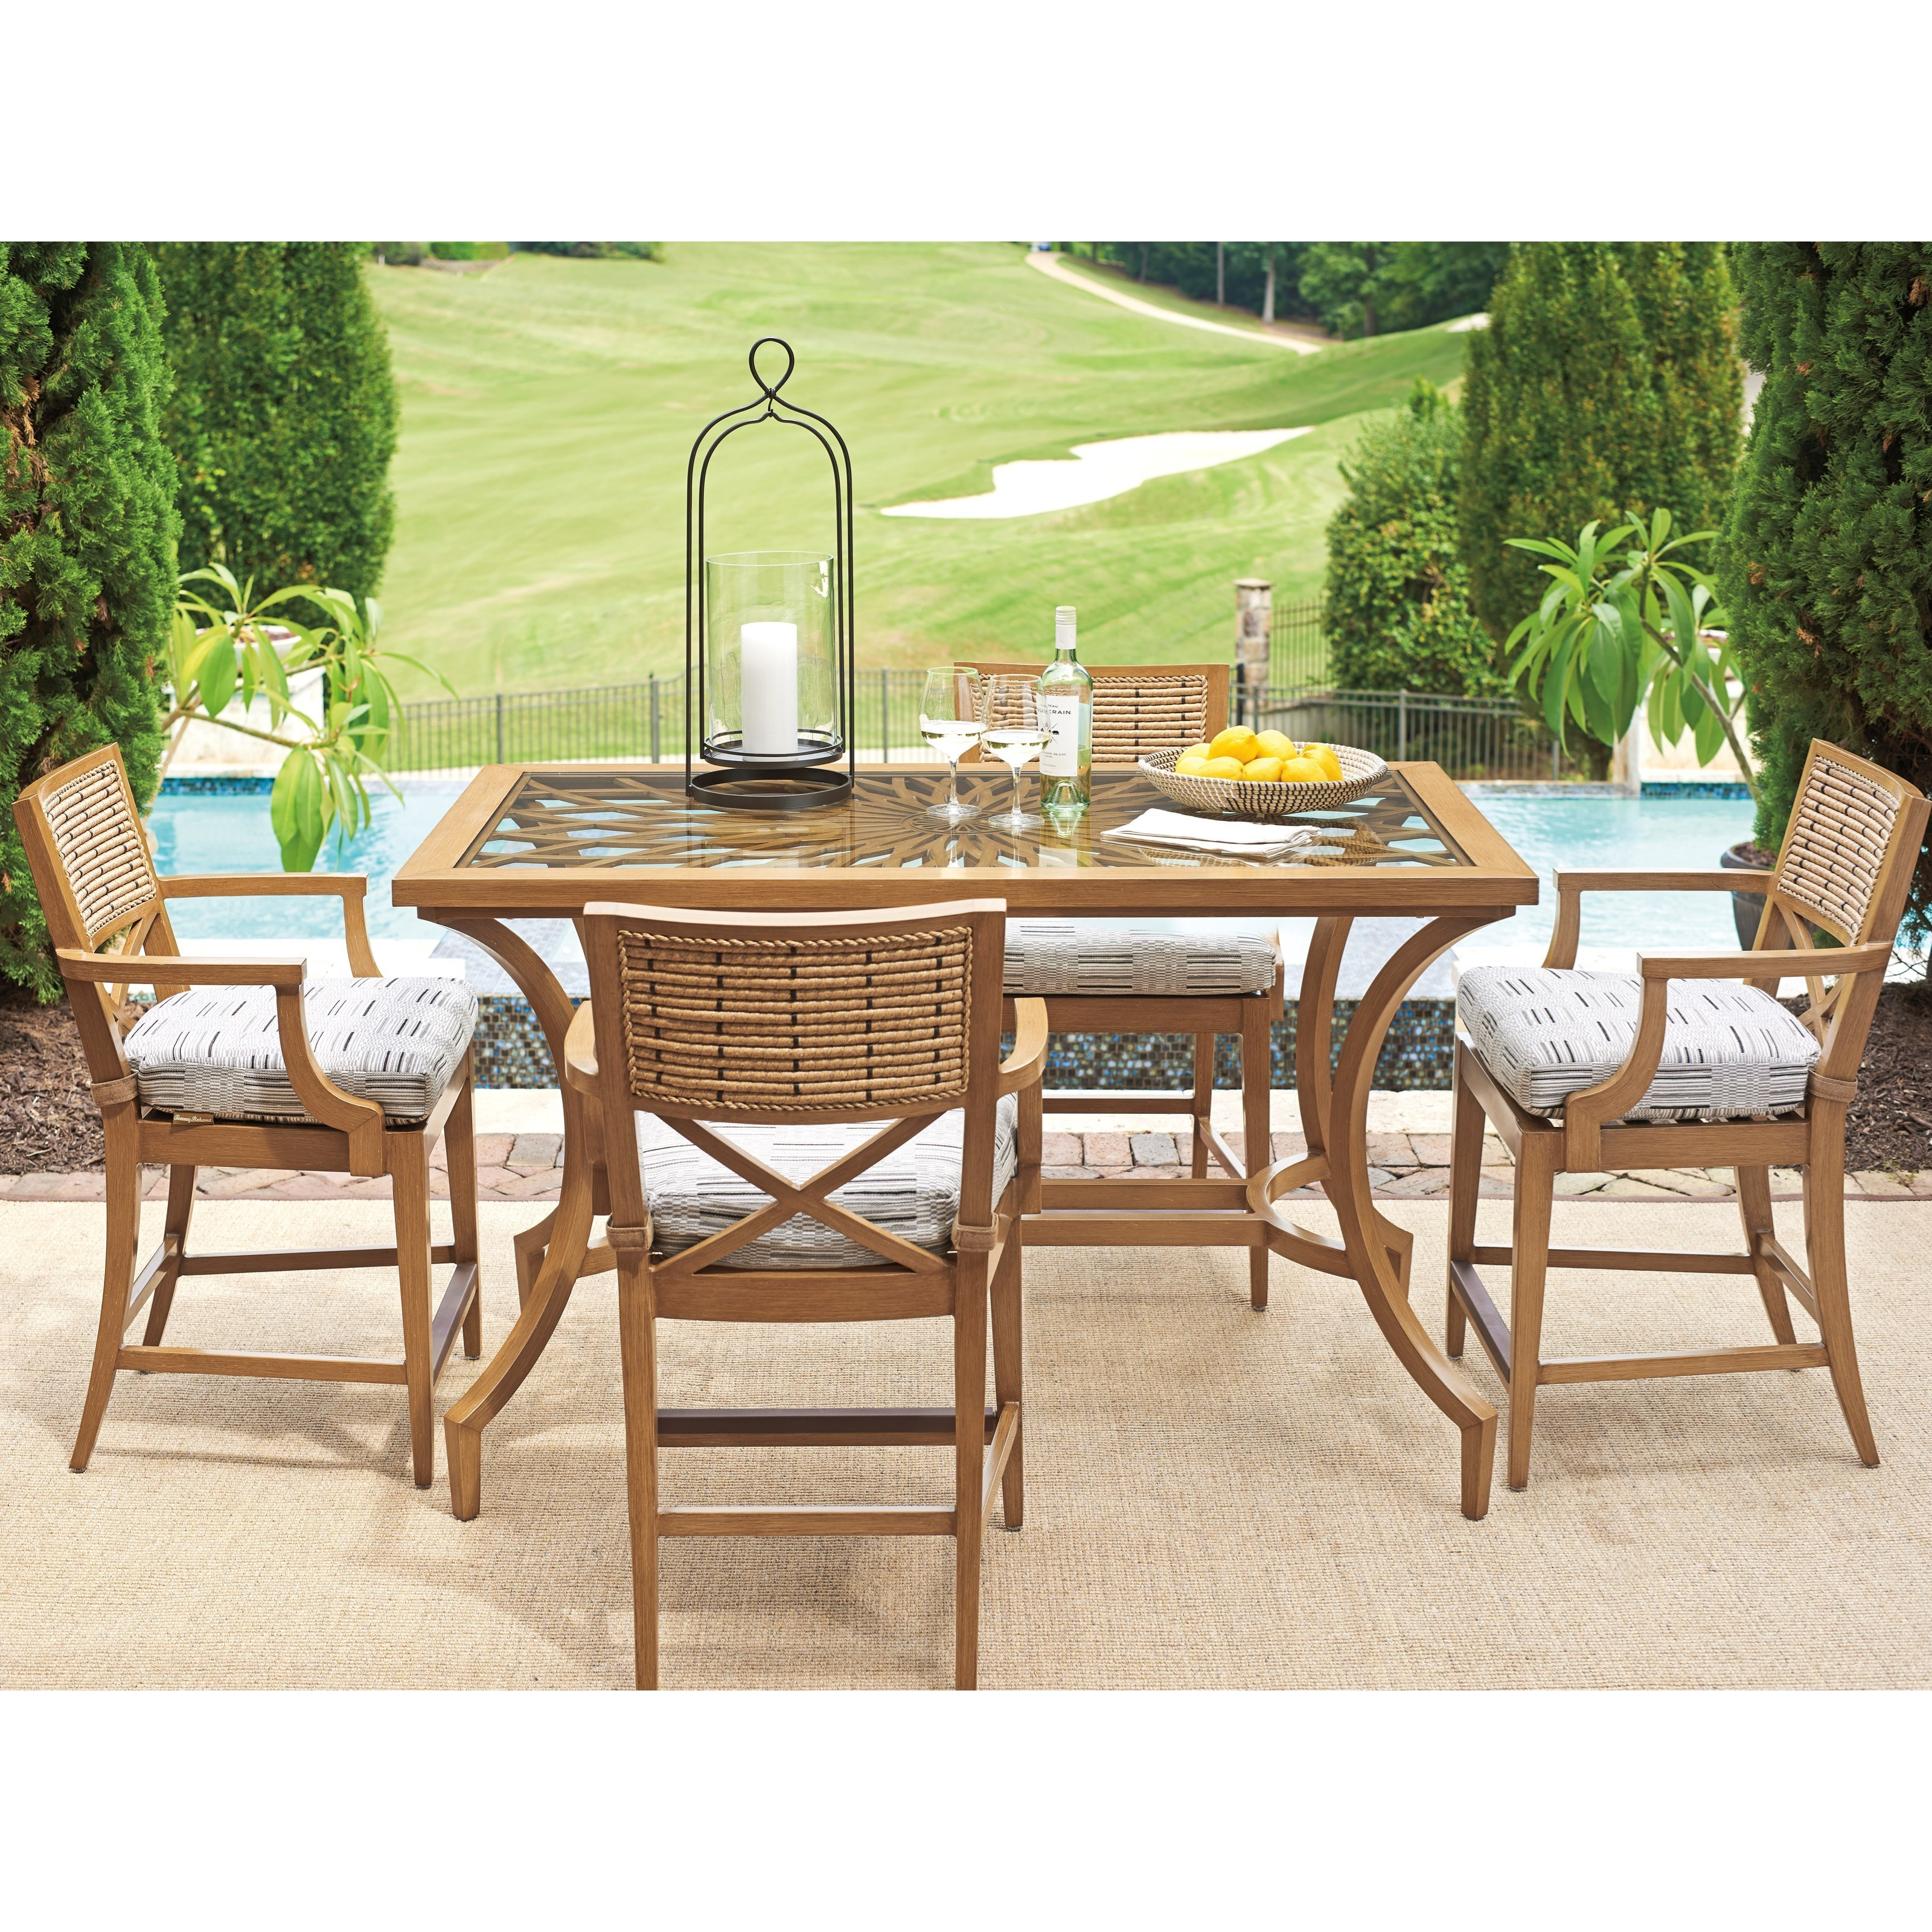 Los Altos Valley View 5 Piece Outdoor Bistro Dining Set by Tommy Bahama Outdoor Living at Baer's Furniture